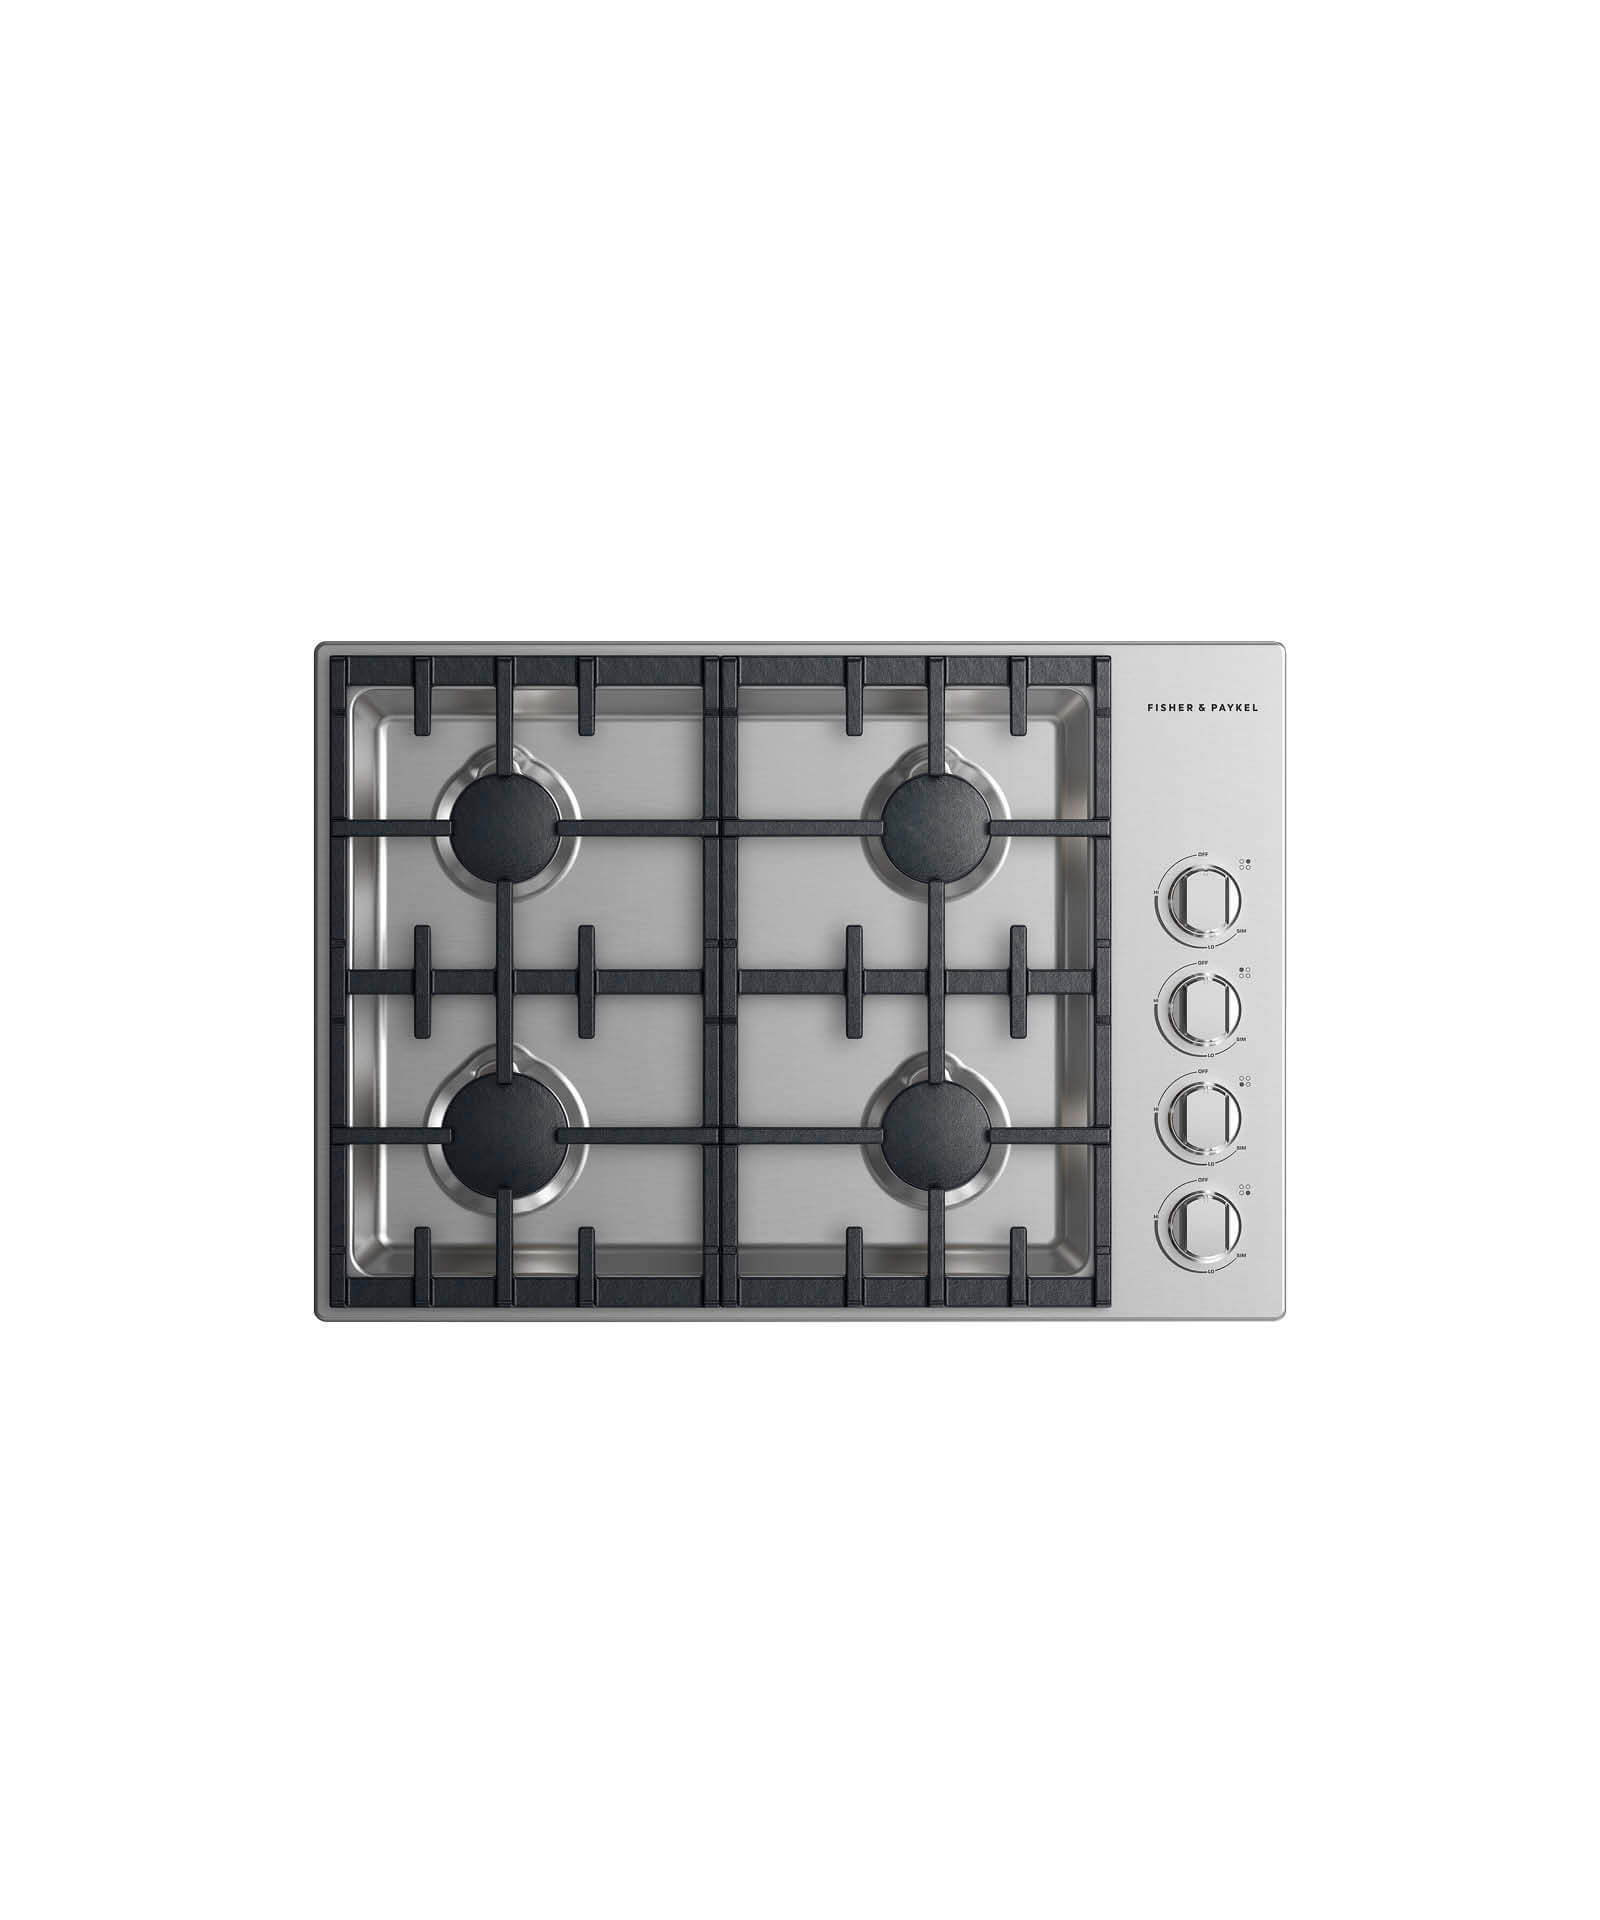 "Fisher and Paykel Gas Cooktop 30"", 4 burner (LPG)"